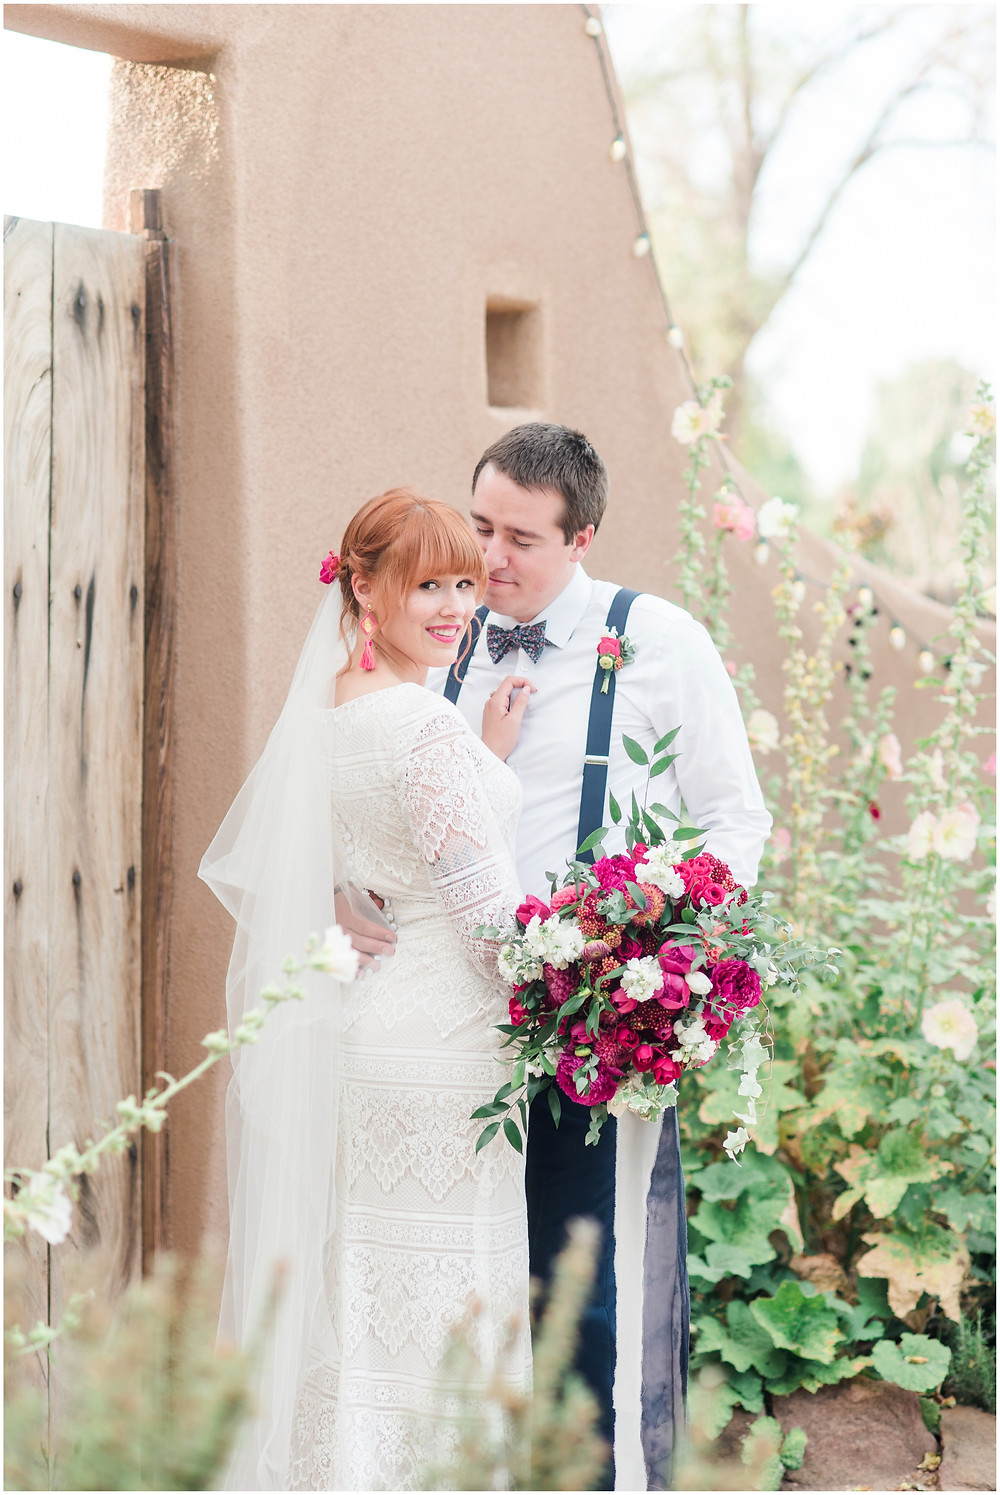 New Mexico Elopement. New Mexico Weding photographer. New Mexico wedding. Casa Parea wedding. Bright Pink wedding. Red Head Bride. Navy wedding. long sleeve wedding dress